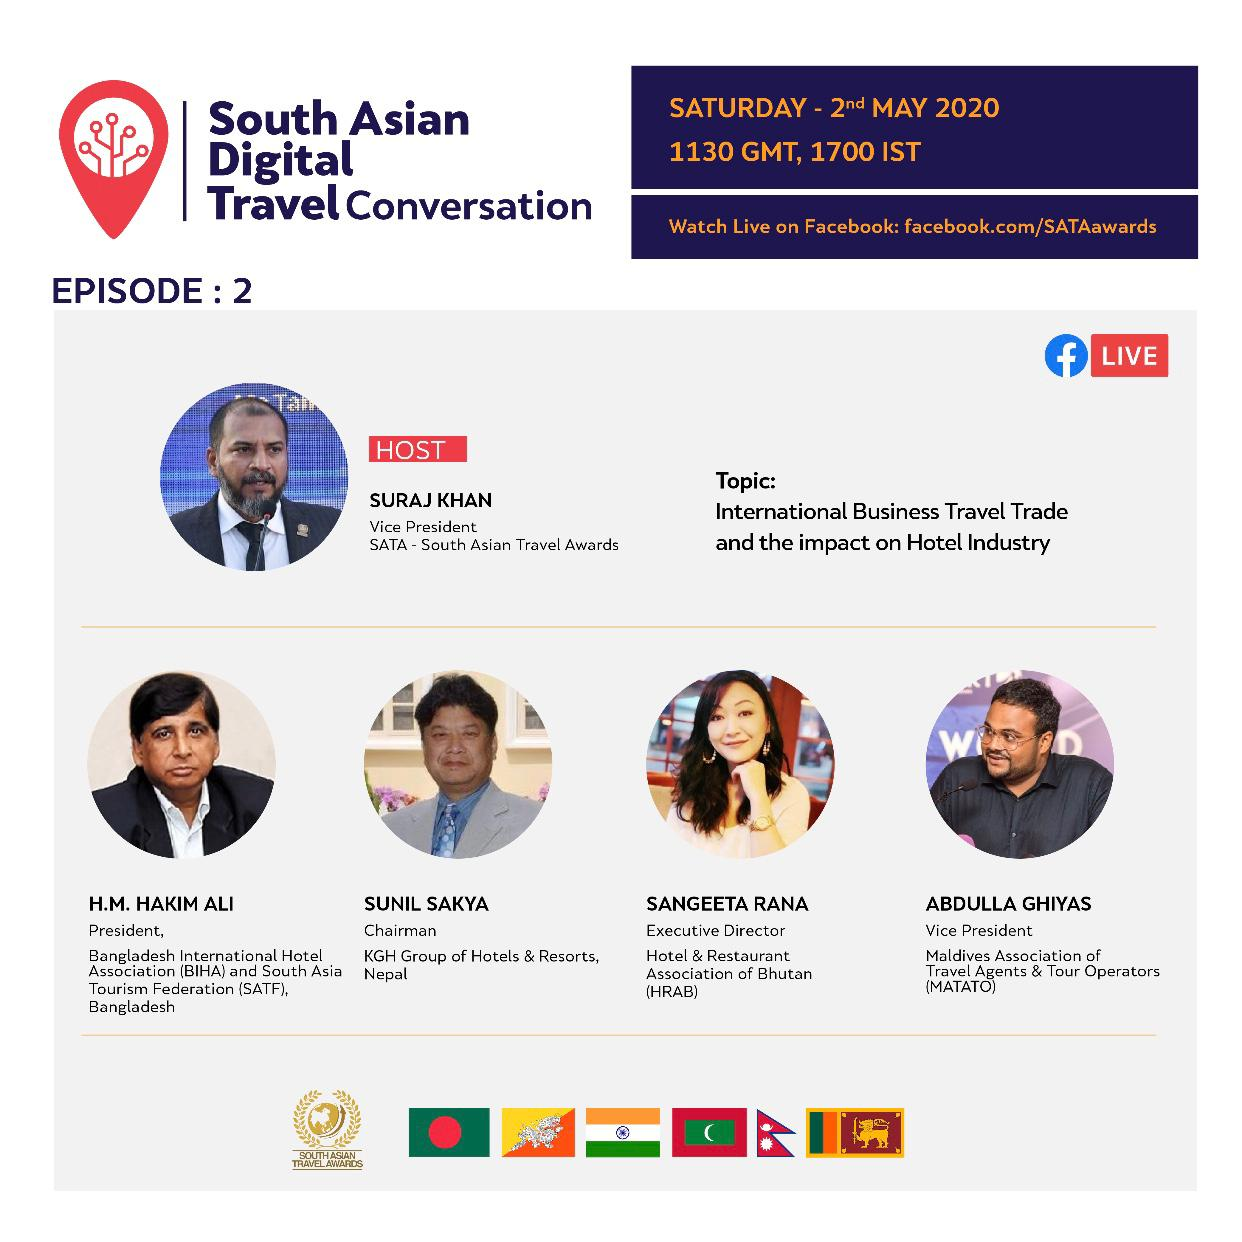 Second Episode of South Asian Digital Travel Conversation to Air On Saturday